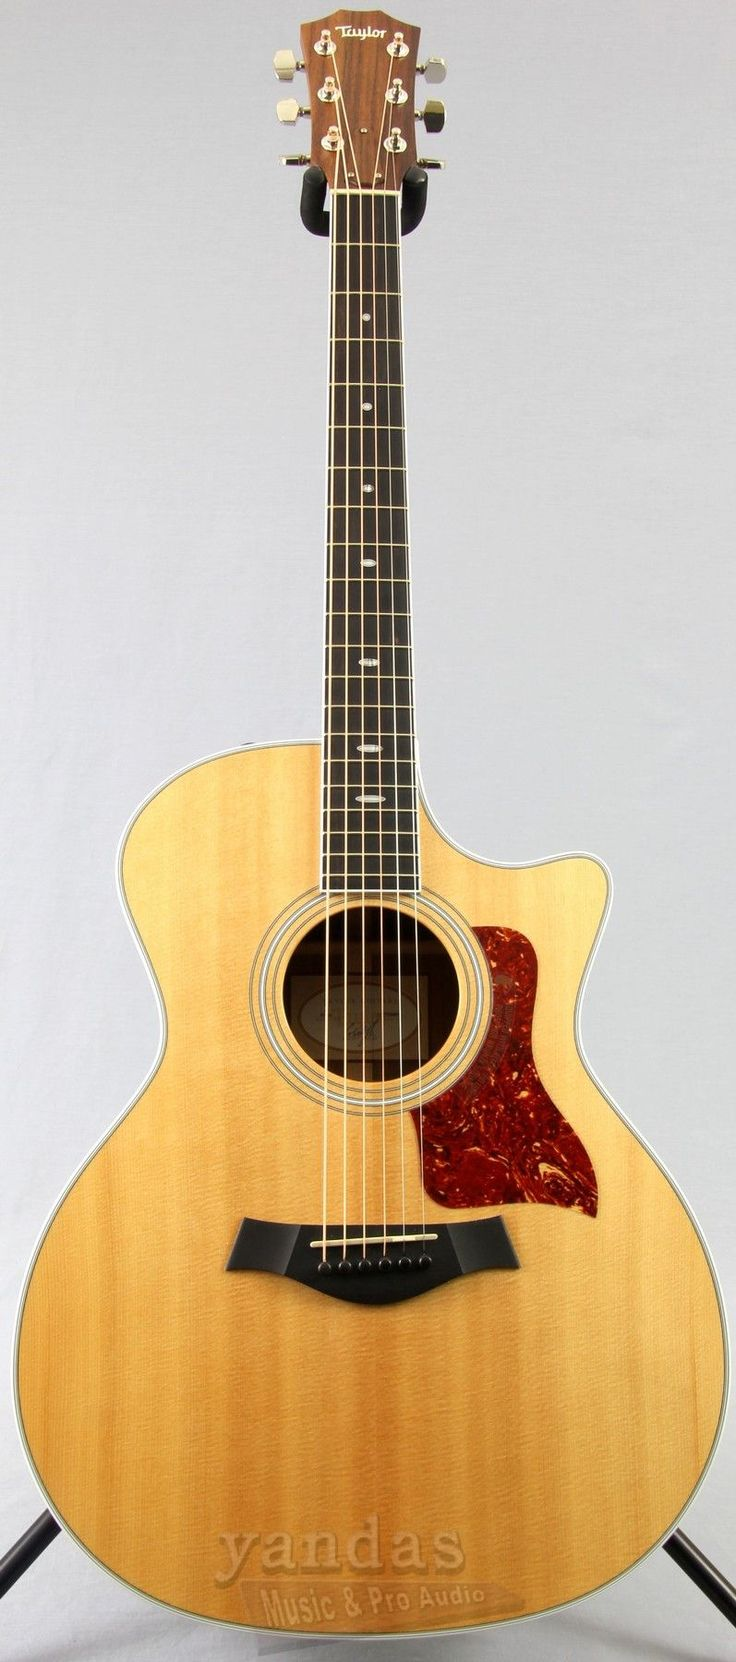 2014 Taylor 414CE Acoustic-Electric Guitar www.guitaristica.org #electricguitar #guitars #guitaristica